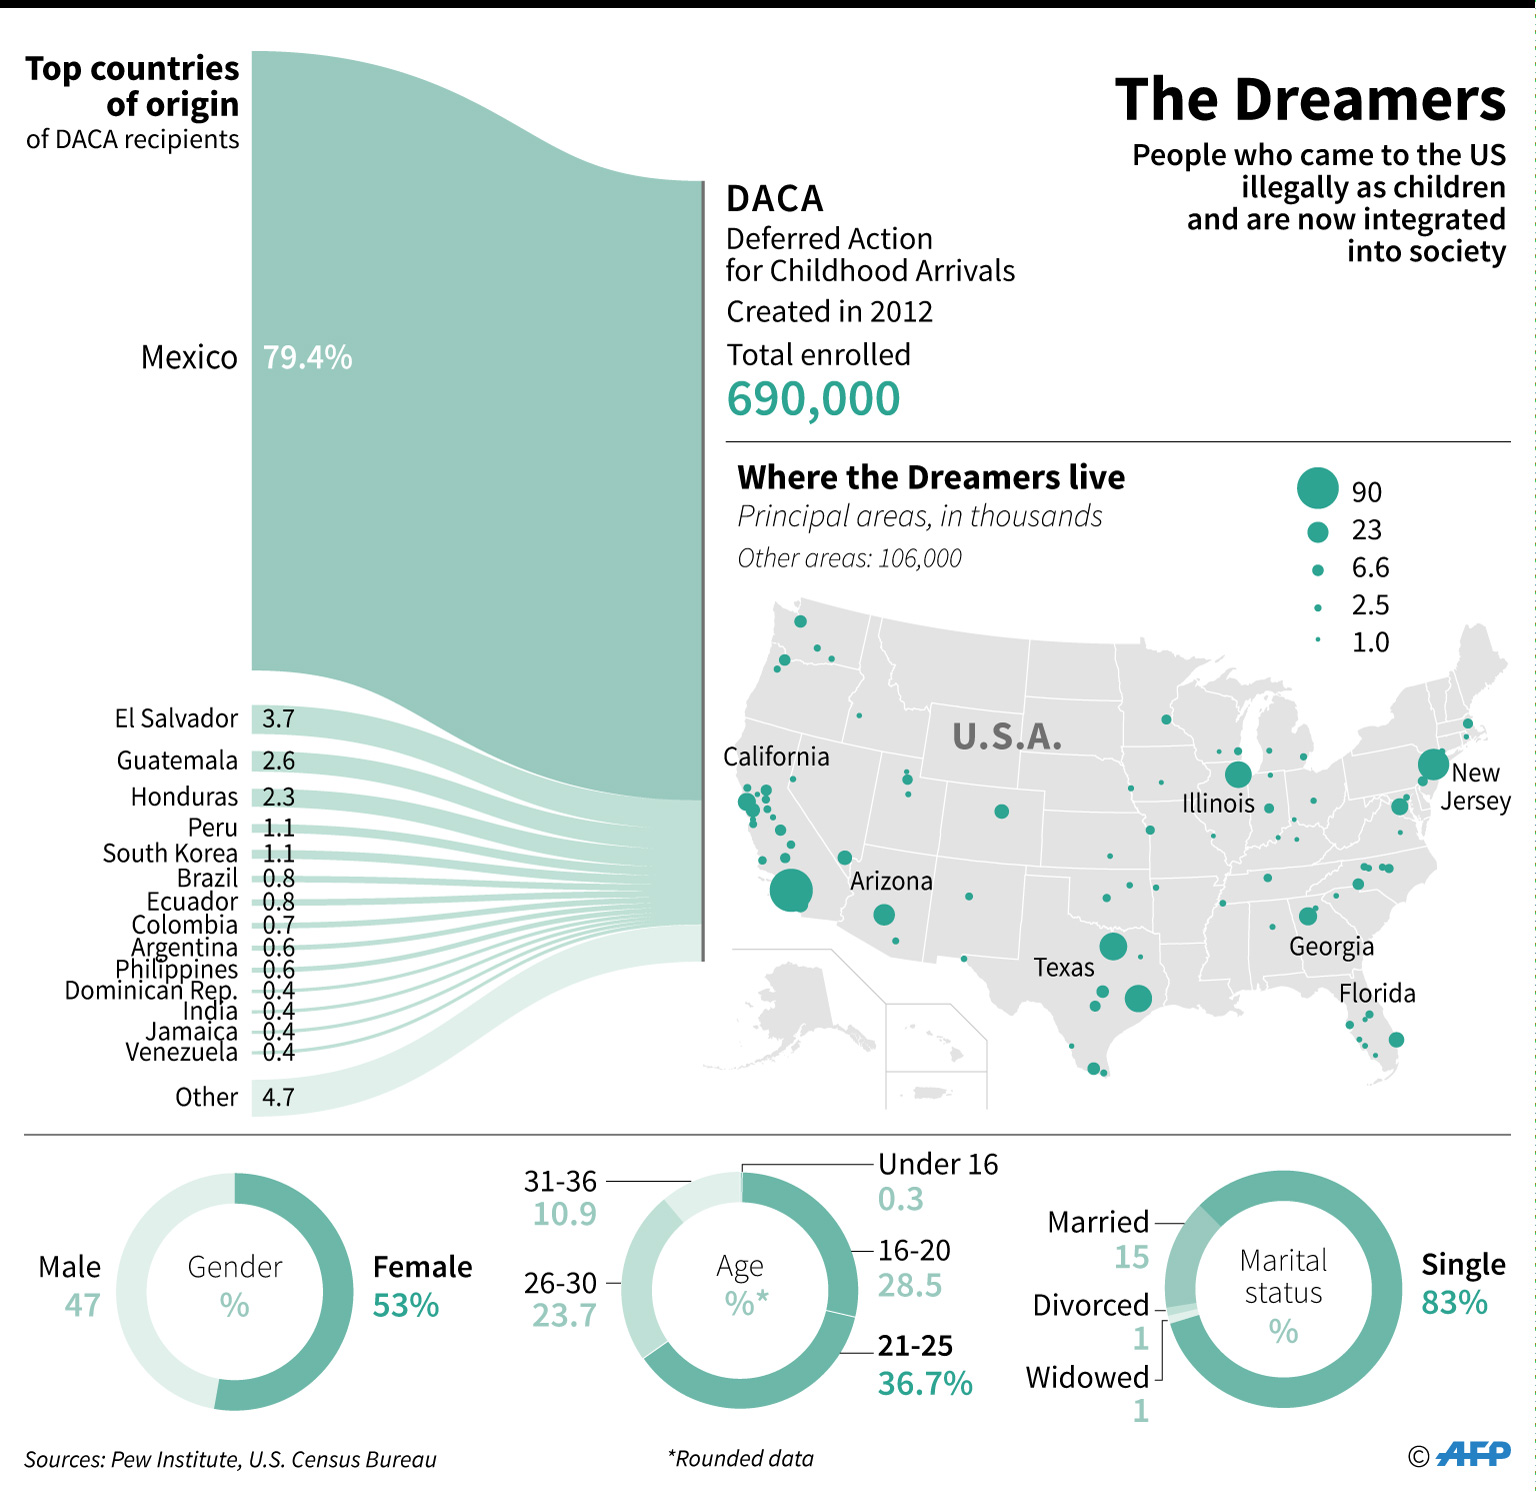 merit-based immigration DACA dreamers